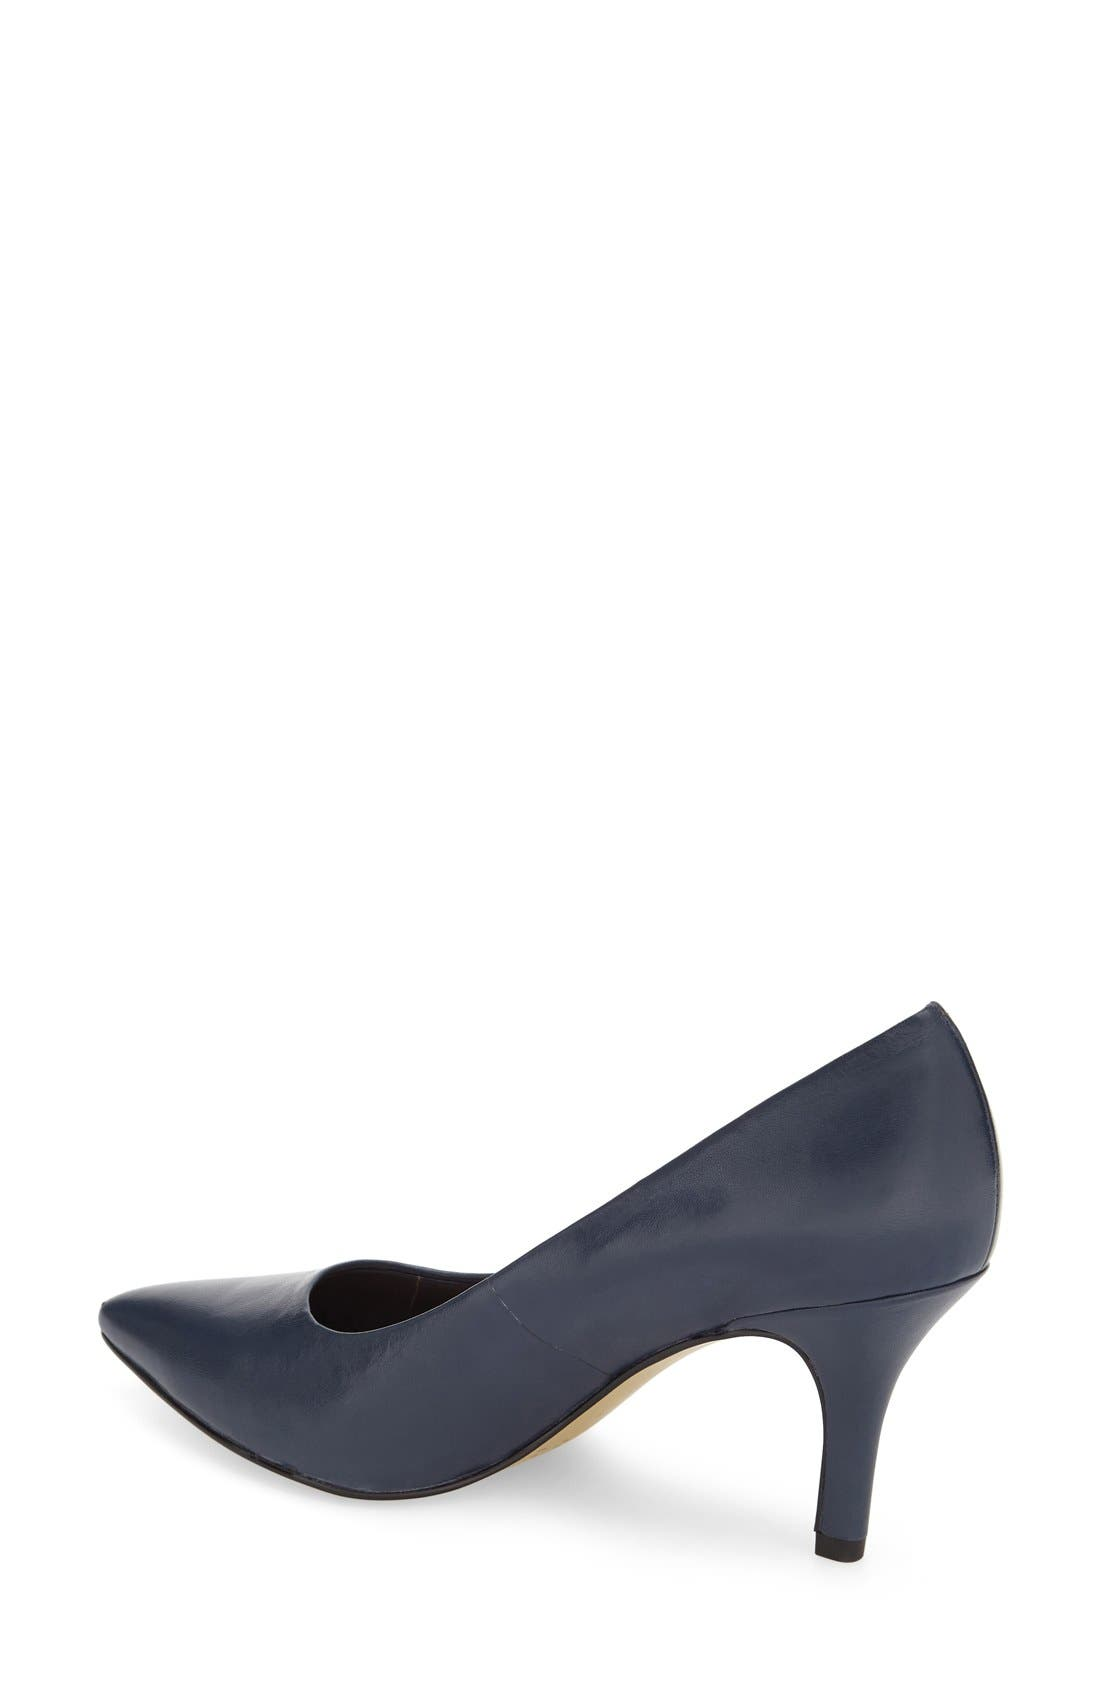 'Define' Pointy Toe Pump,                             Alternate thumbnail 2, color,                             NAVY LEATHER